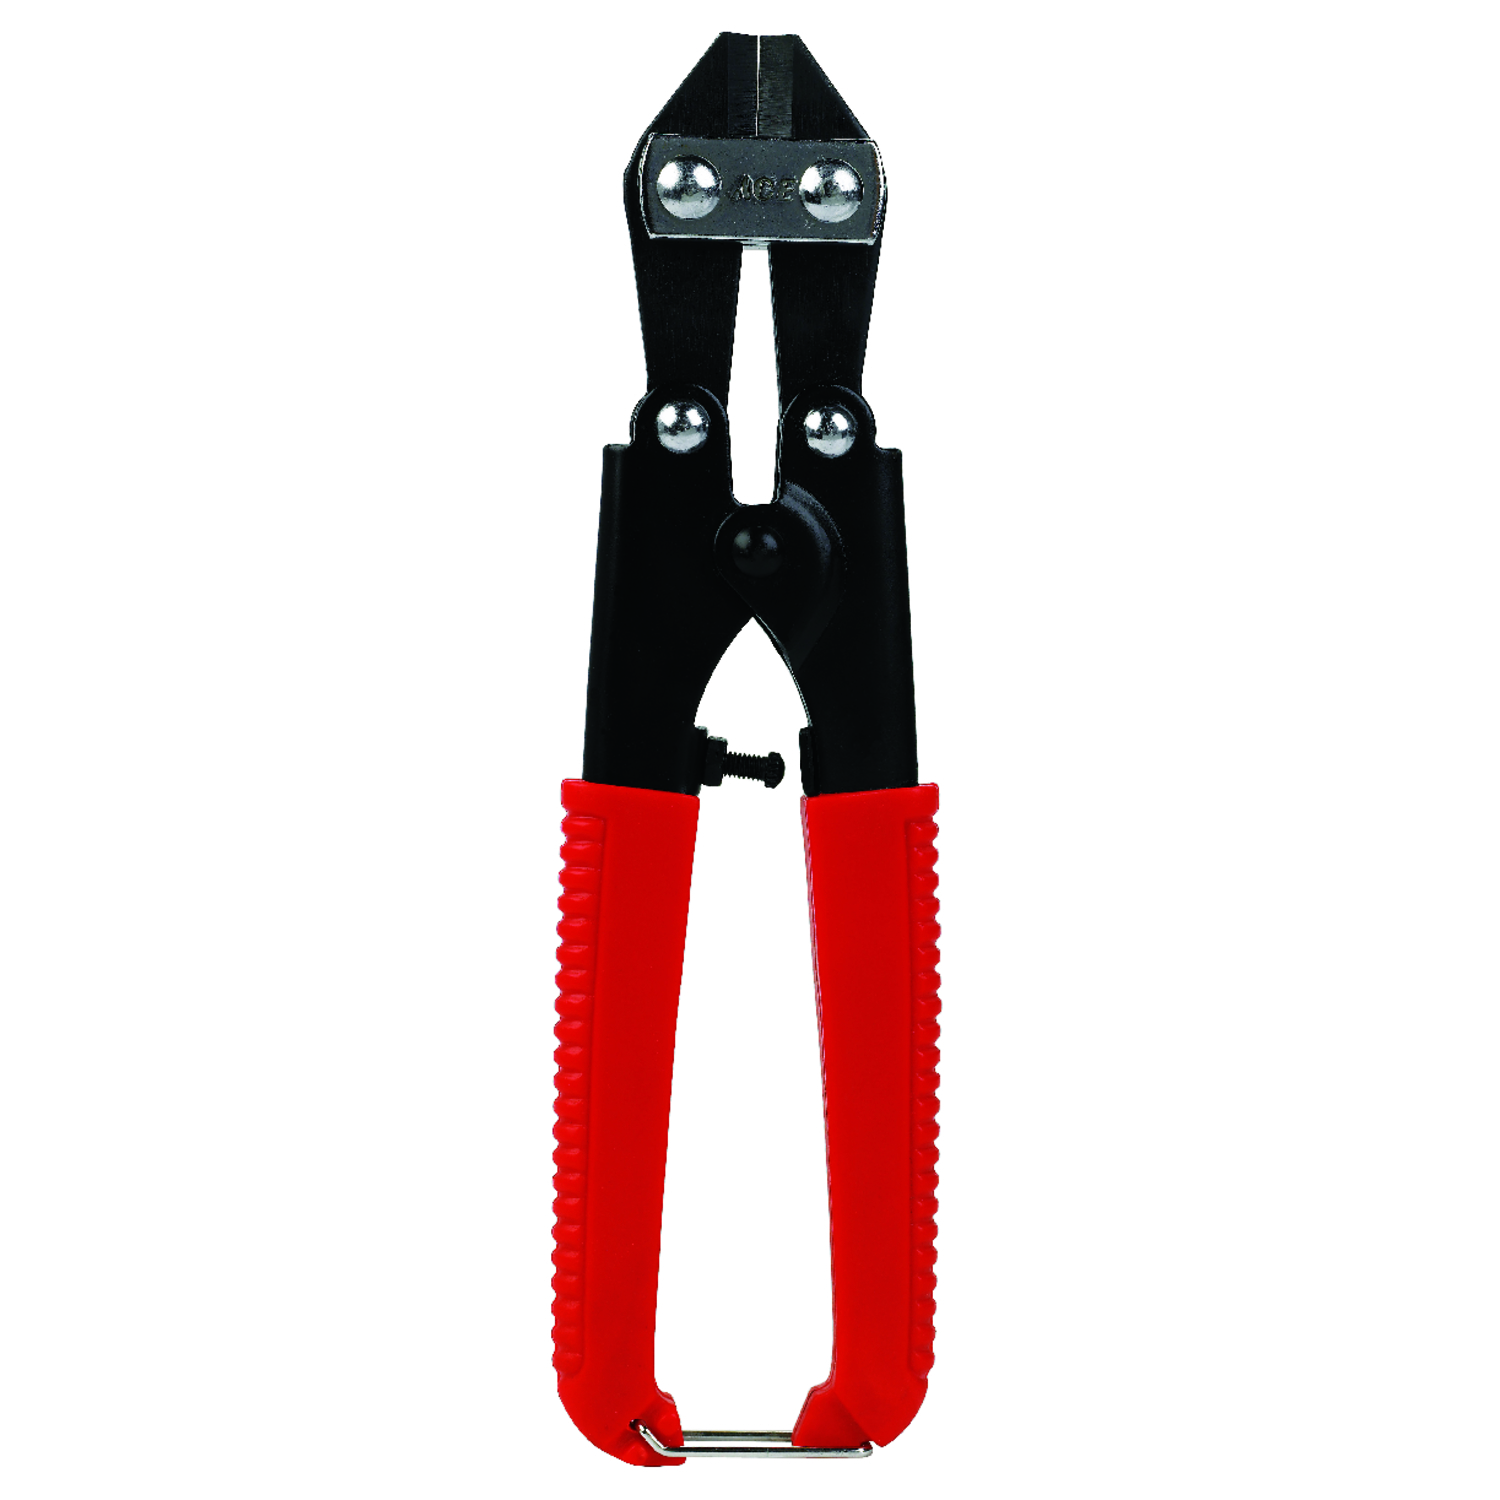 Ace Bolt Cutter 8 in. - Ace Hardware